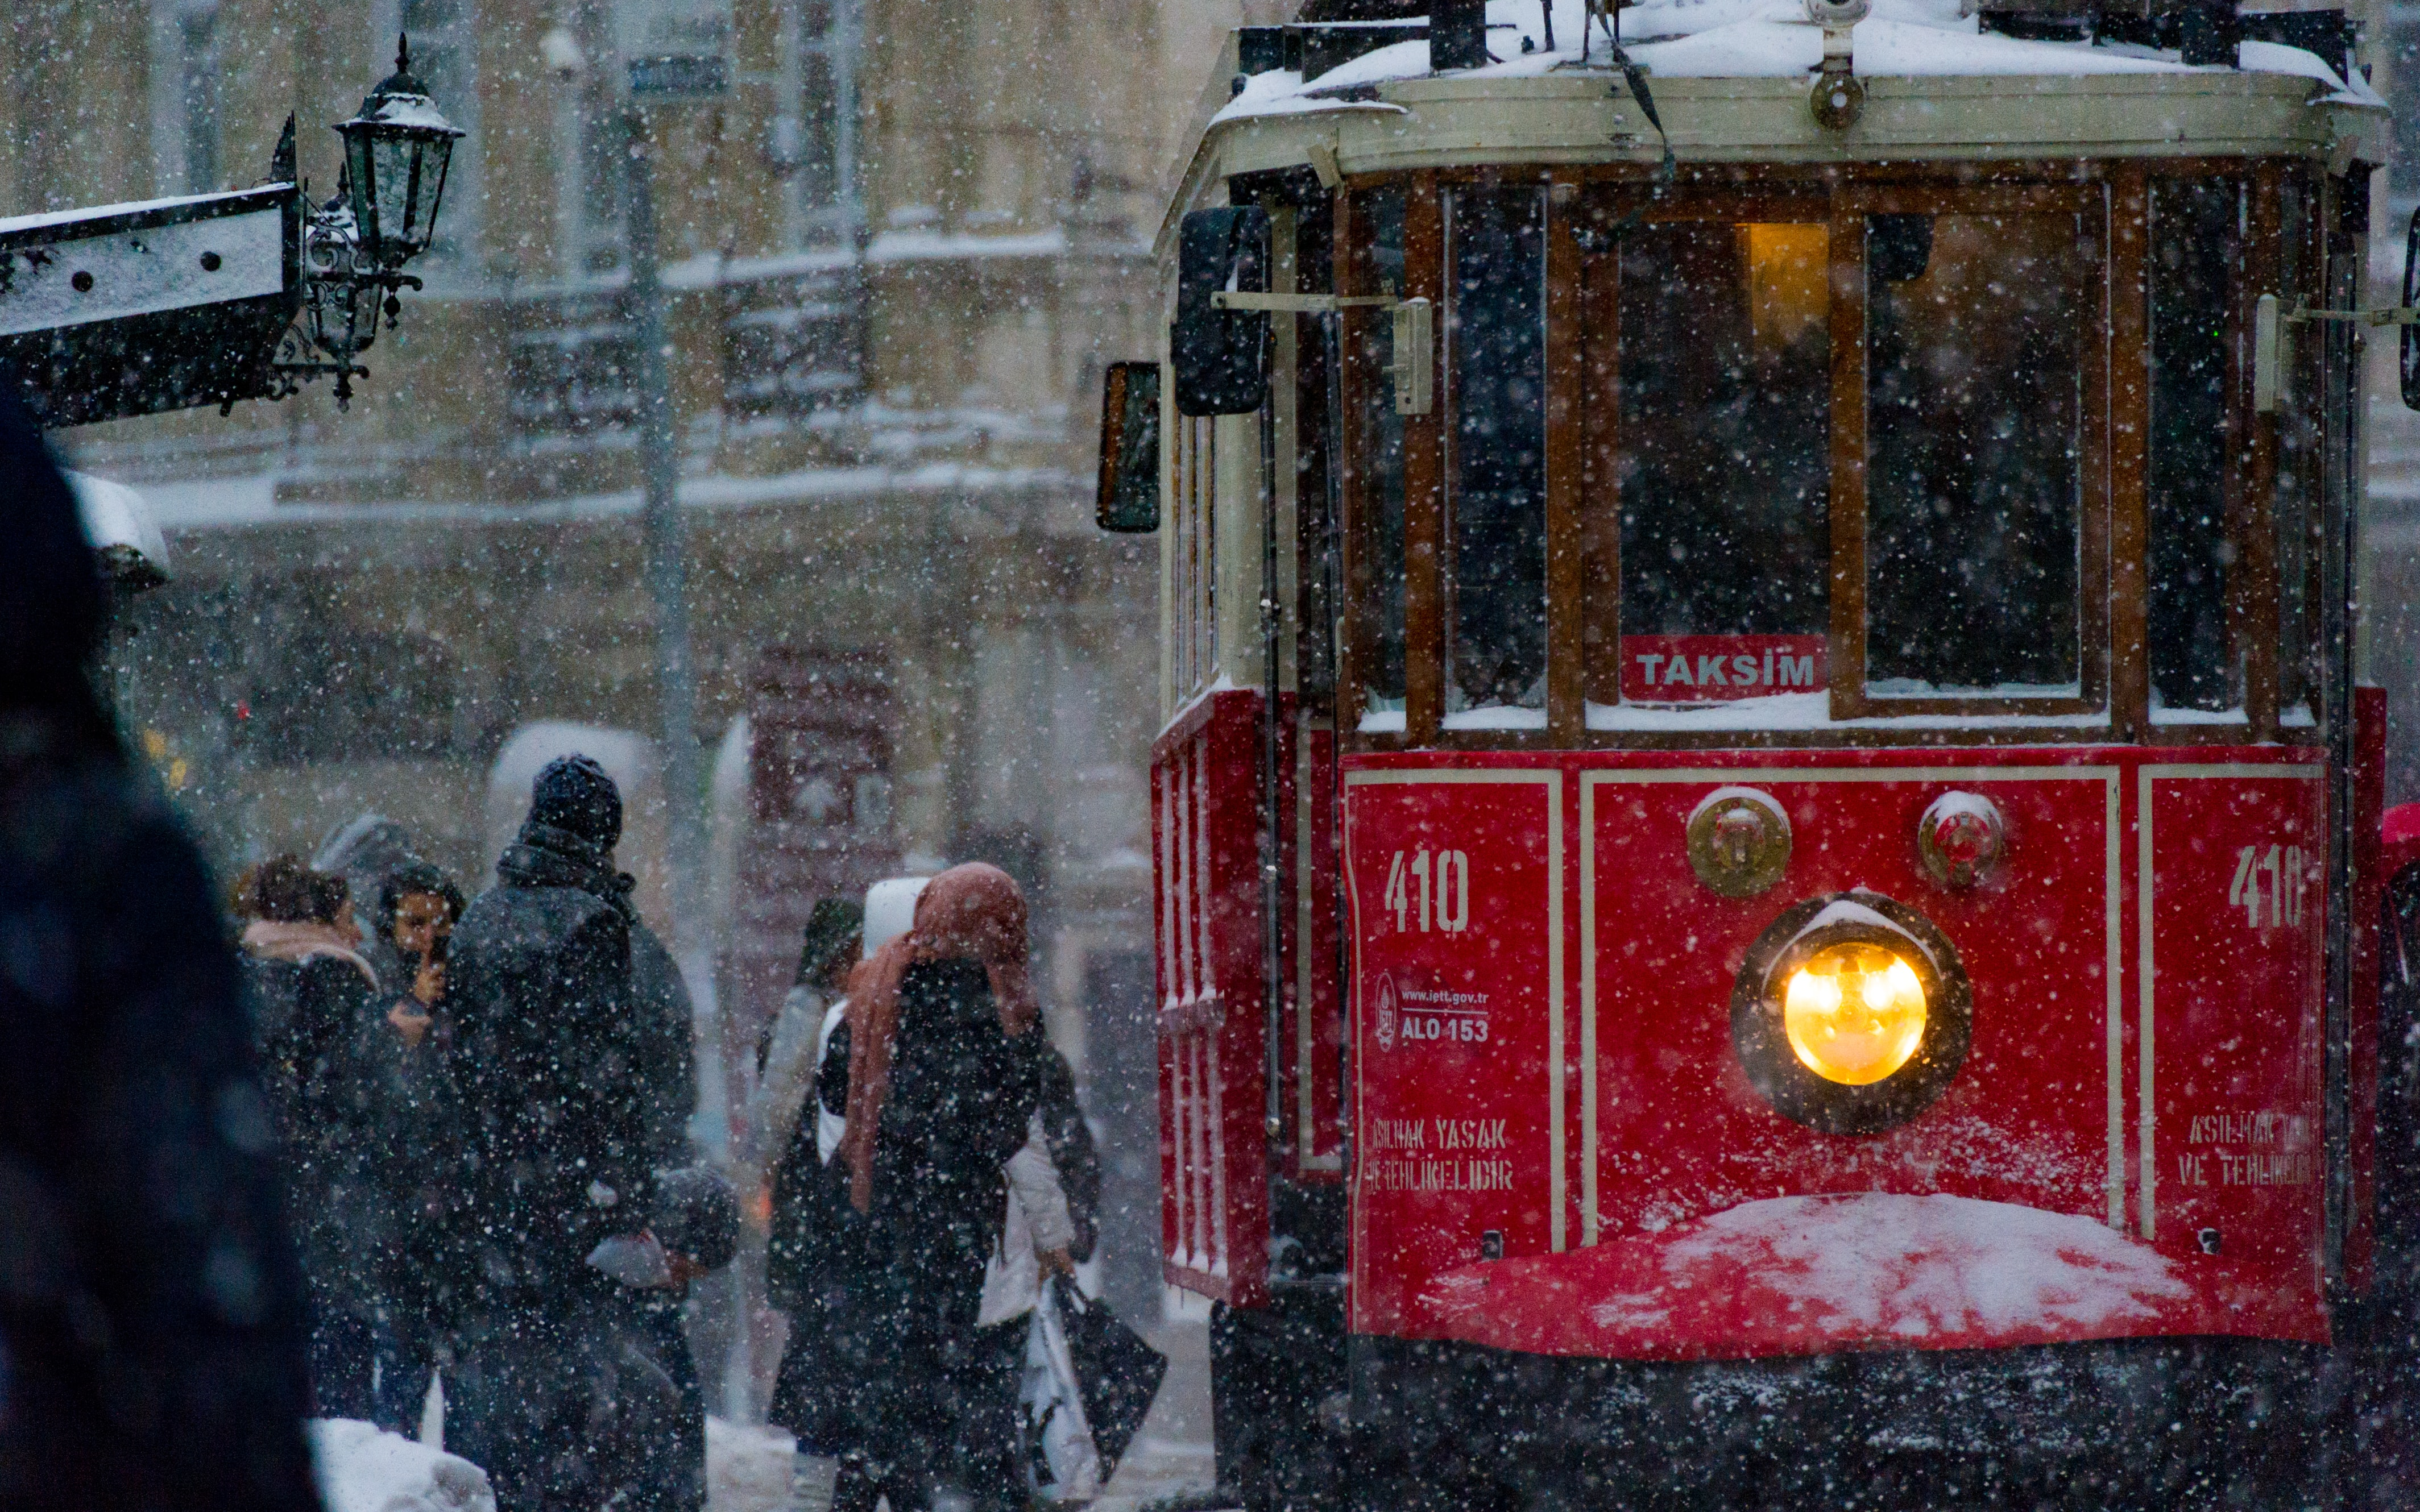 A red trolley picks up passengers in winter clothing during snowfall